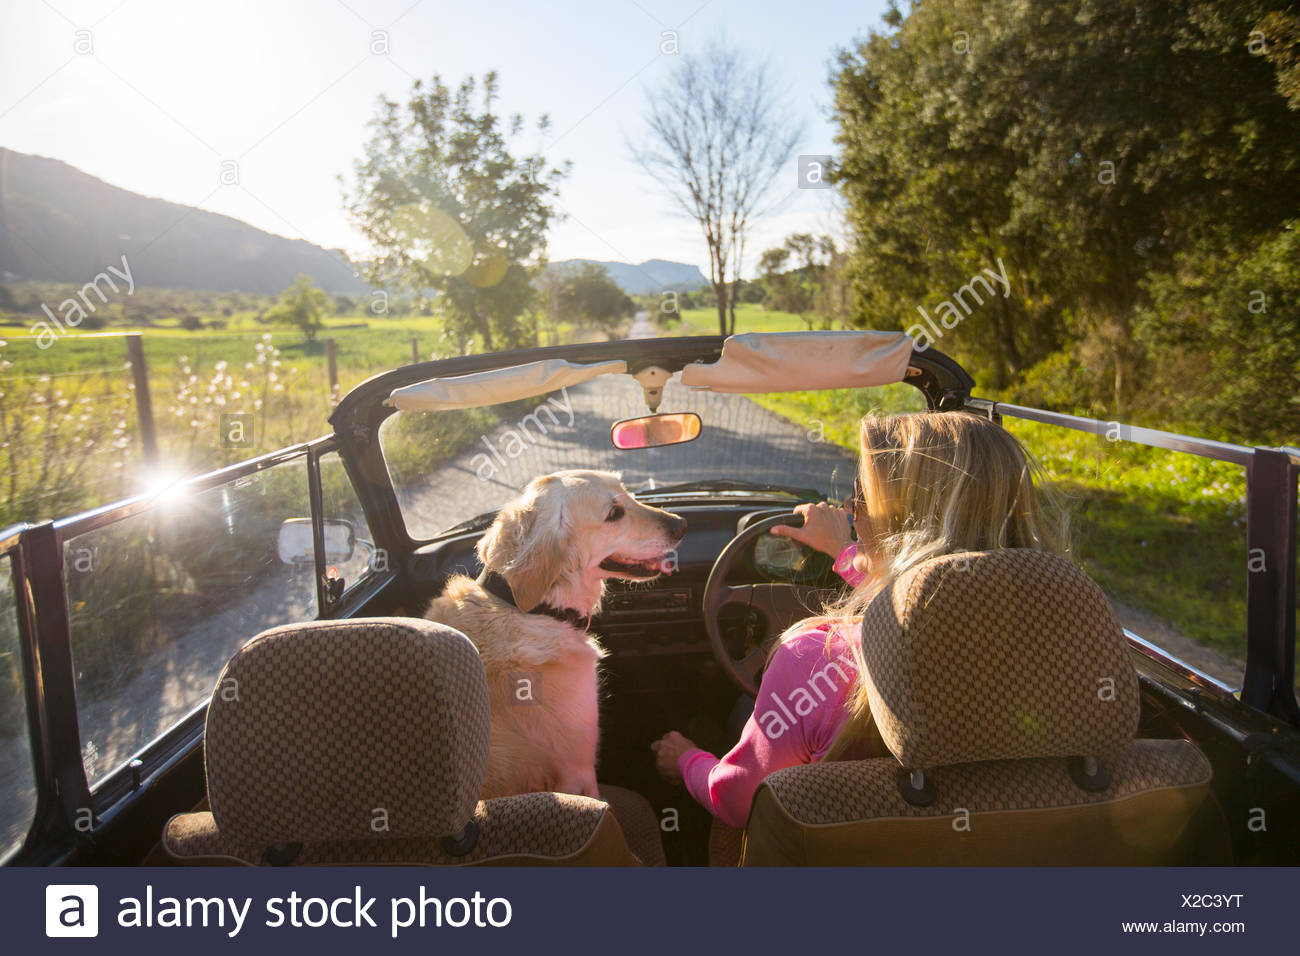 Mature woman and dog, in convertible car, rear view - Stock Image